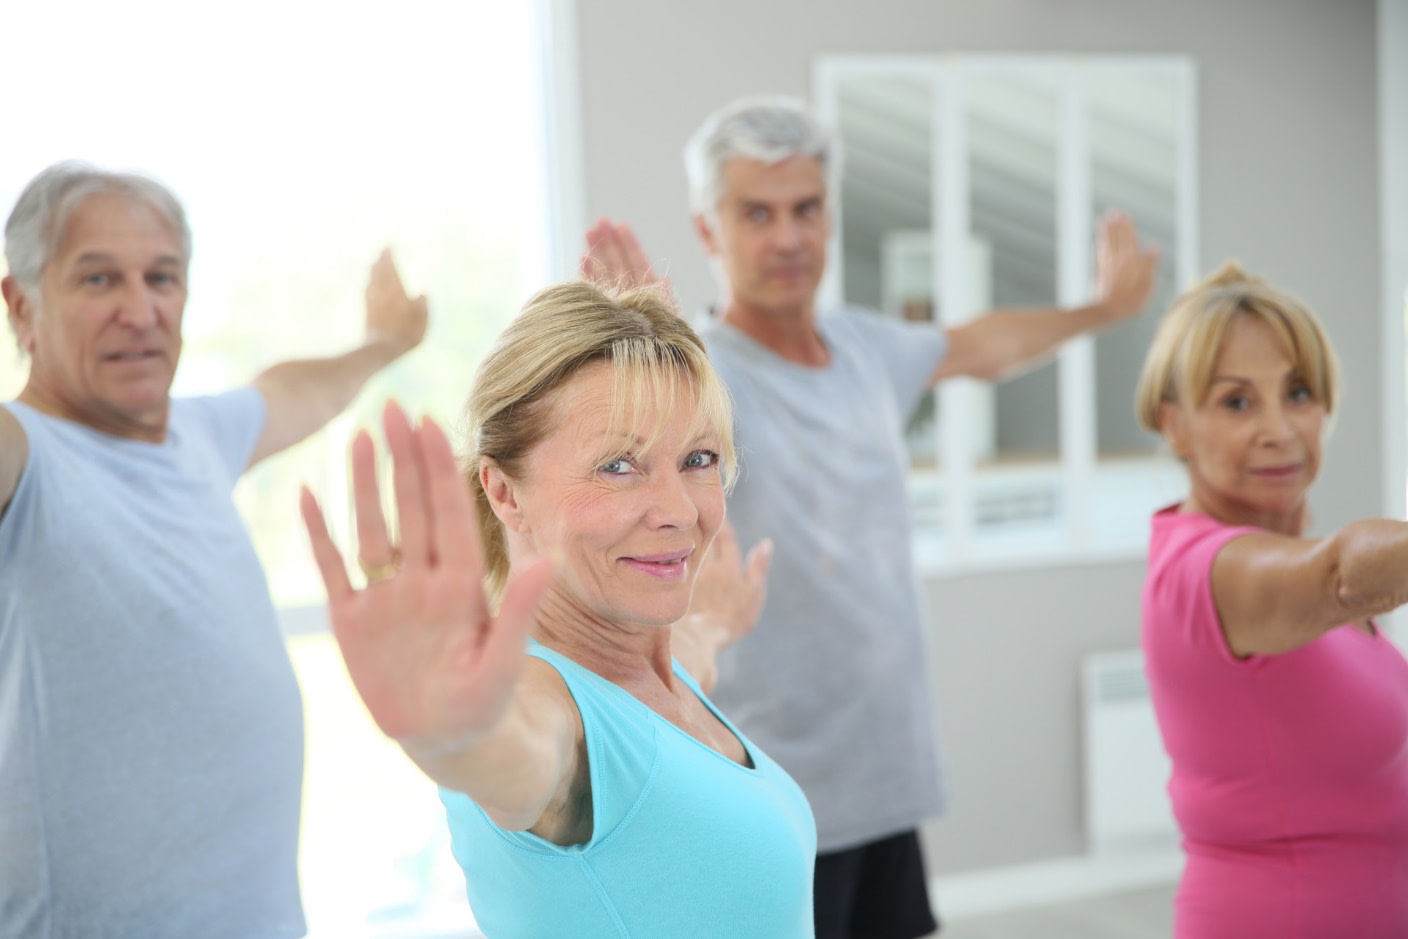 Exercise for seniors can be more fun when done in groups